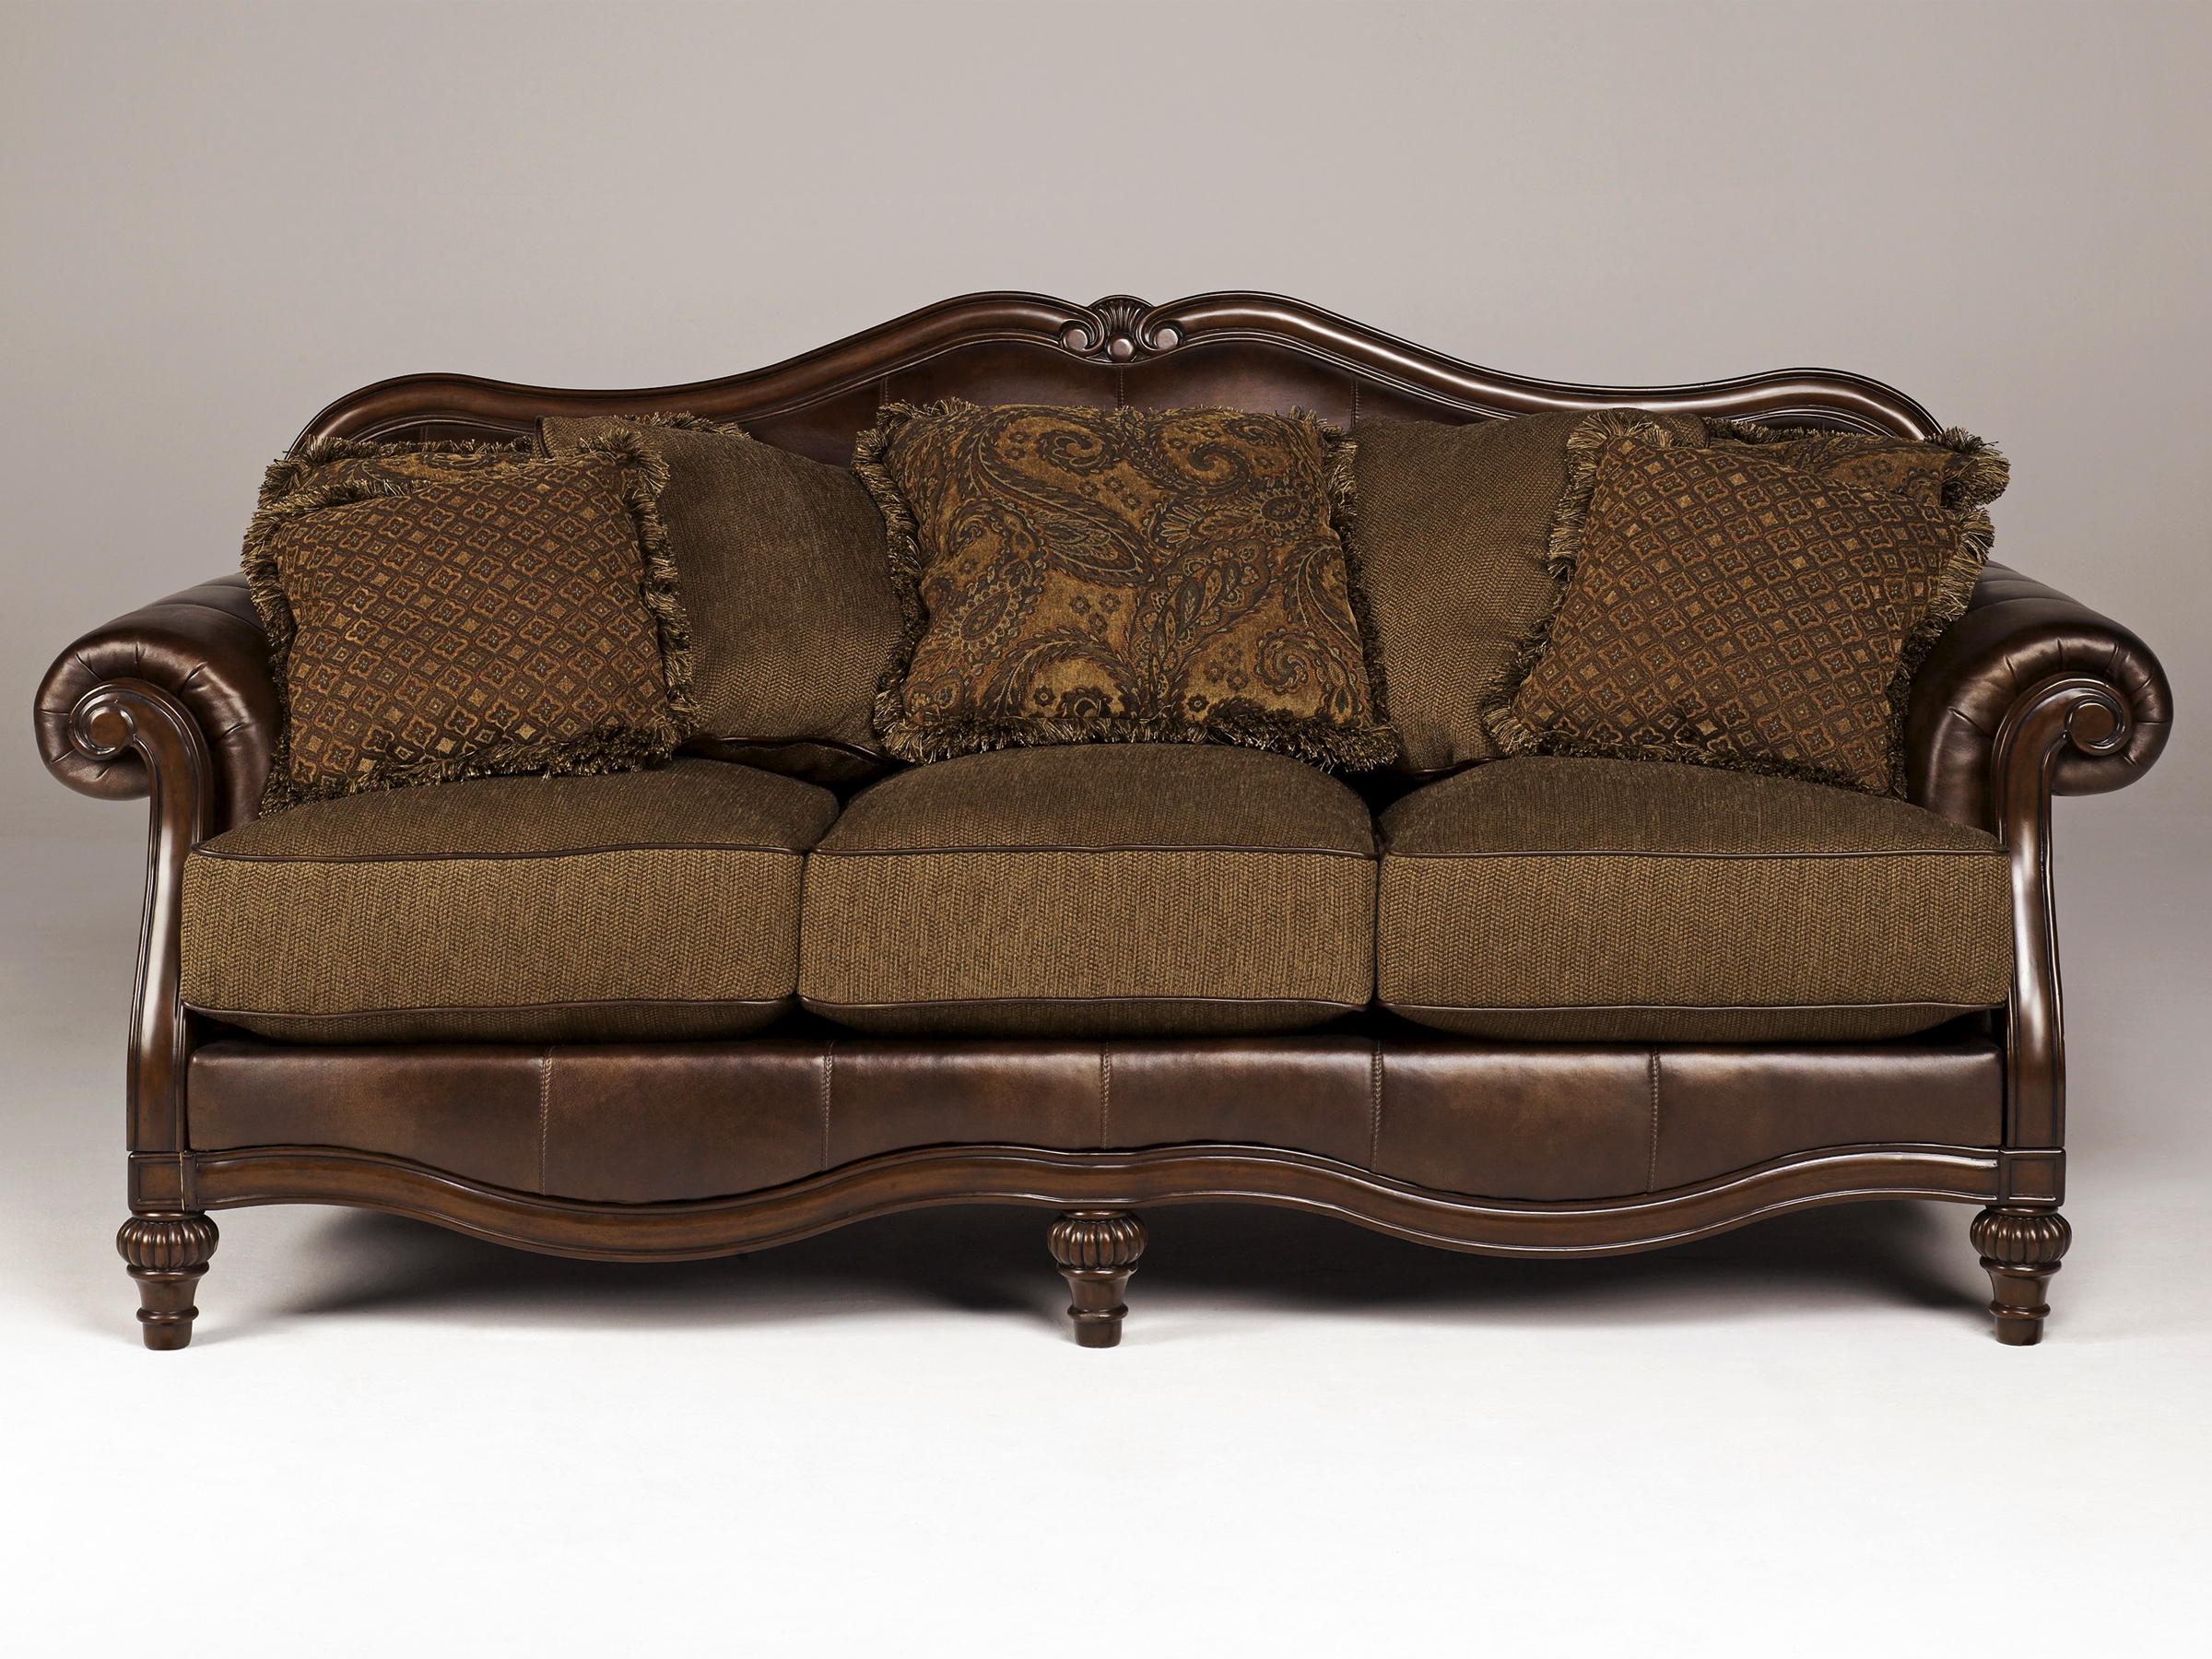 oak furniture sofa beds leather sectional richmond va antique bed 1905 15 empire mission style quartersawn